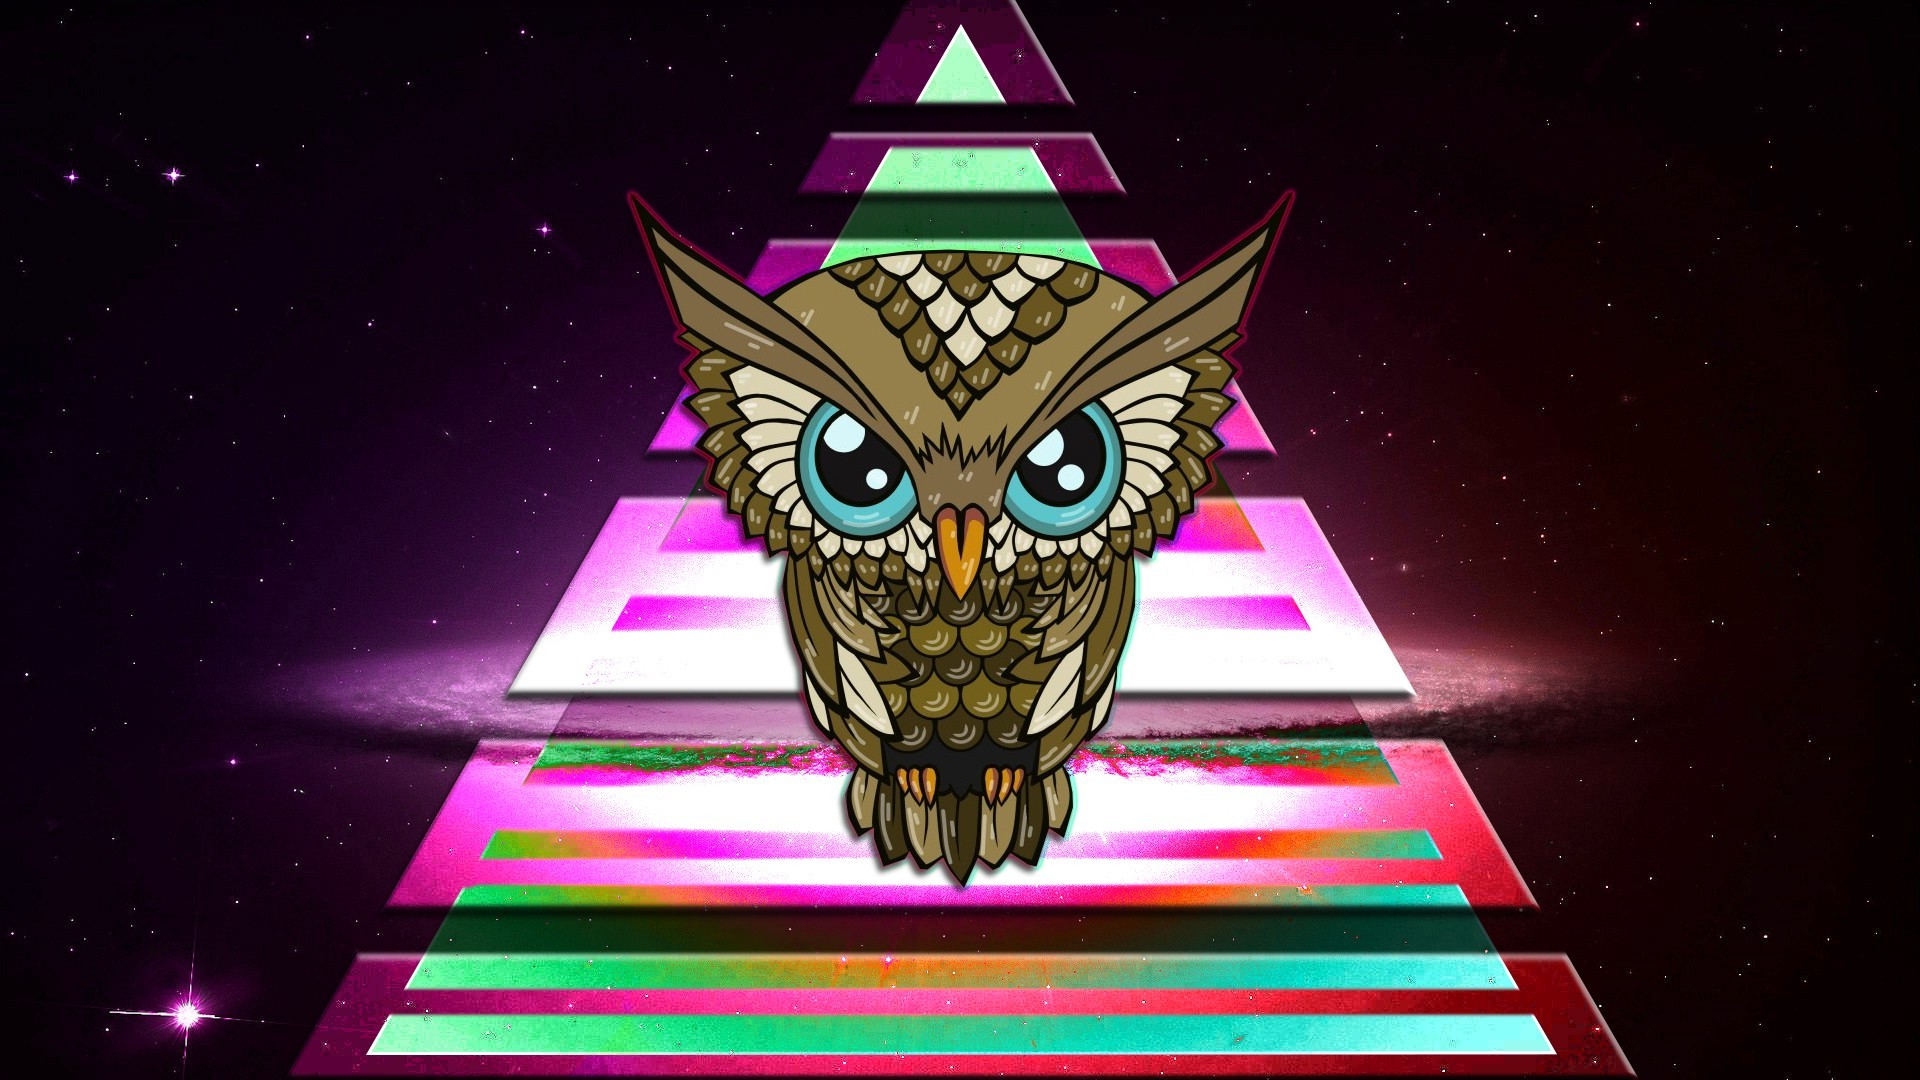 illuminati wallpaper,owl,graphic design,illustration,design,bird of prey